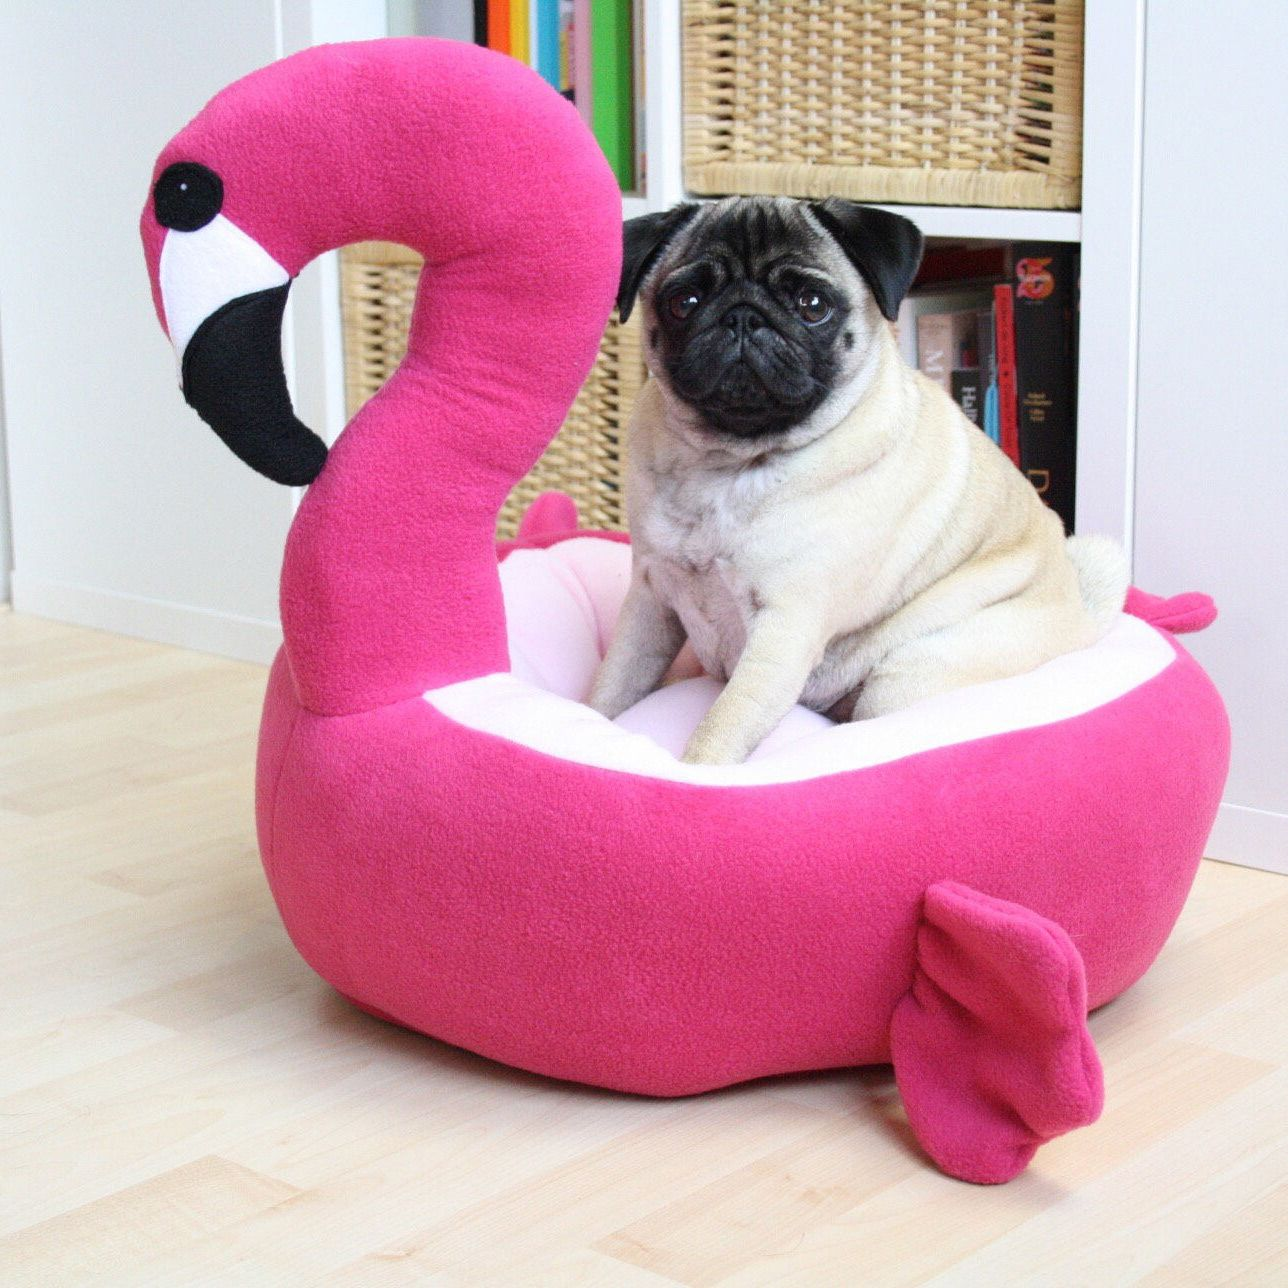 Pet bed in the shape of a flamingo Super cute for a small